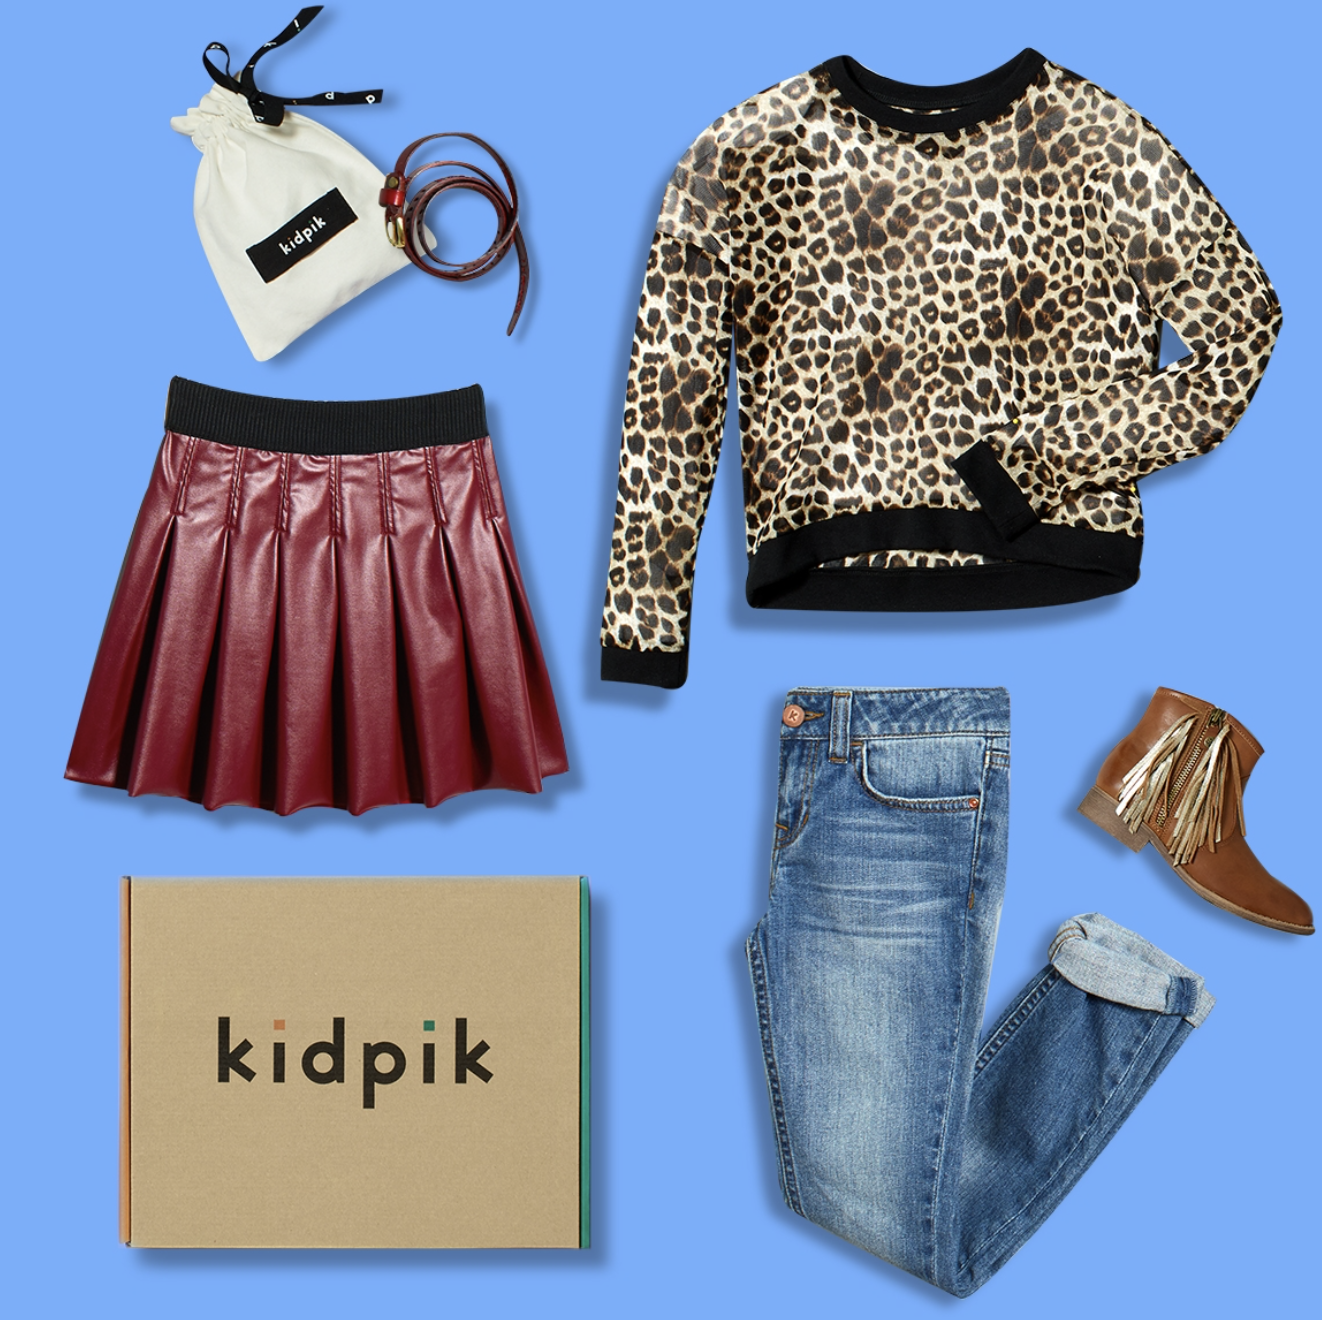 Kidpik Subscription Box with Leopard